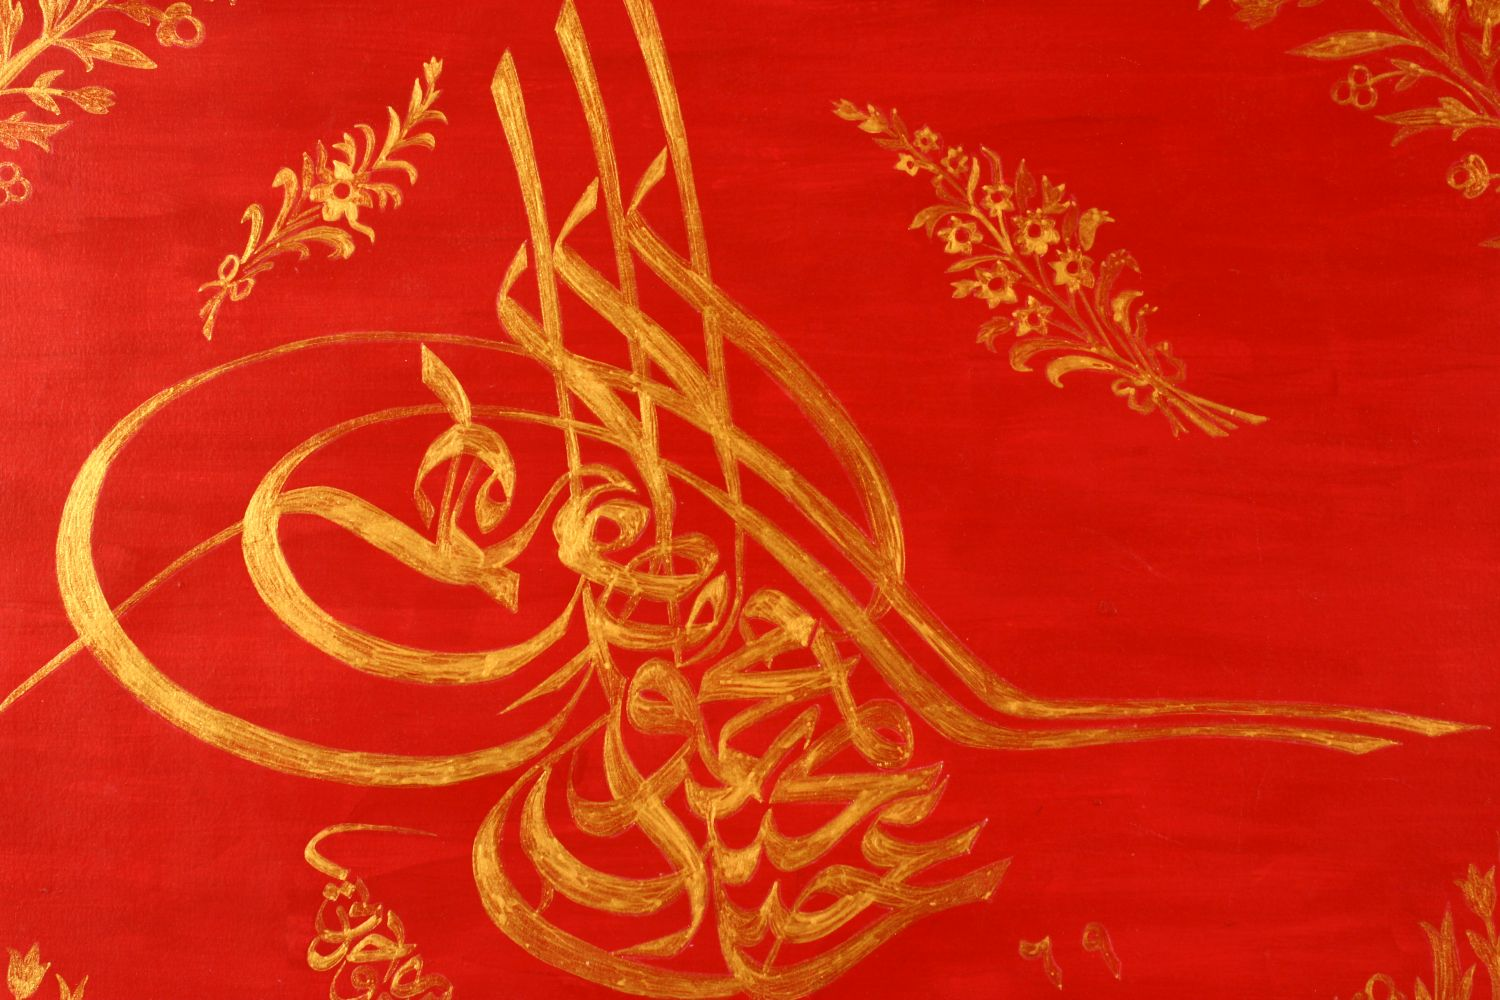 A TURKISH PAINTED CALLIGRAPHY PANEL, red and gilt calligraphy, 50cm x 57cm - Image 2 of 4